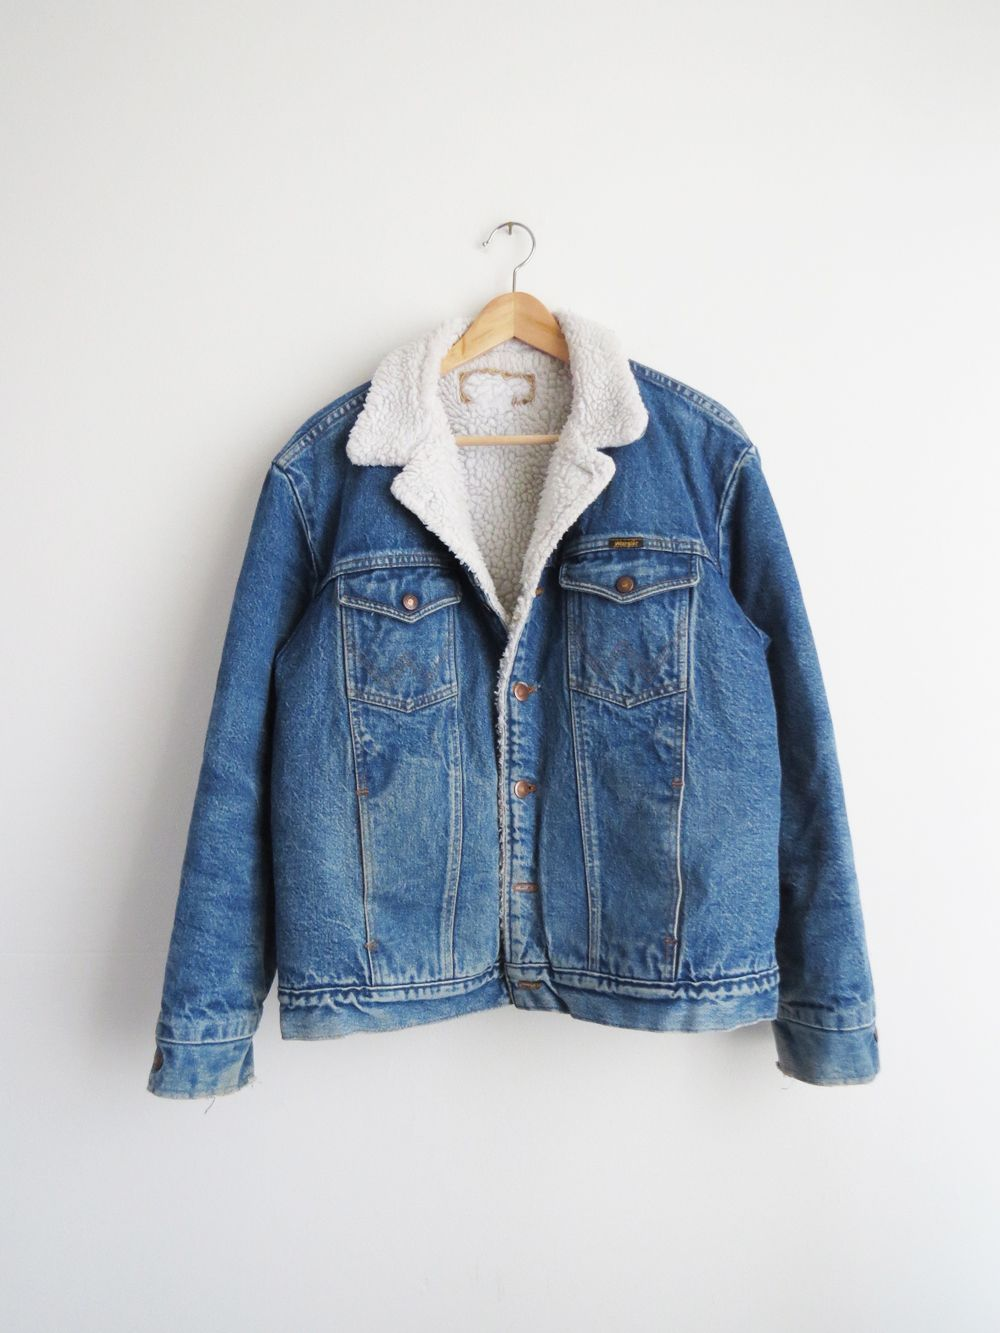 Wrangler Shearling Jacket Vintage 1980 S Jean Sherpa Jacket Sold Cutie Clothes Clothes Jackets [ 1333 x 1000 Pixel ]